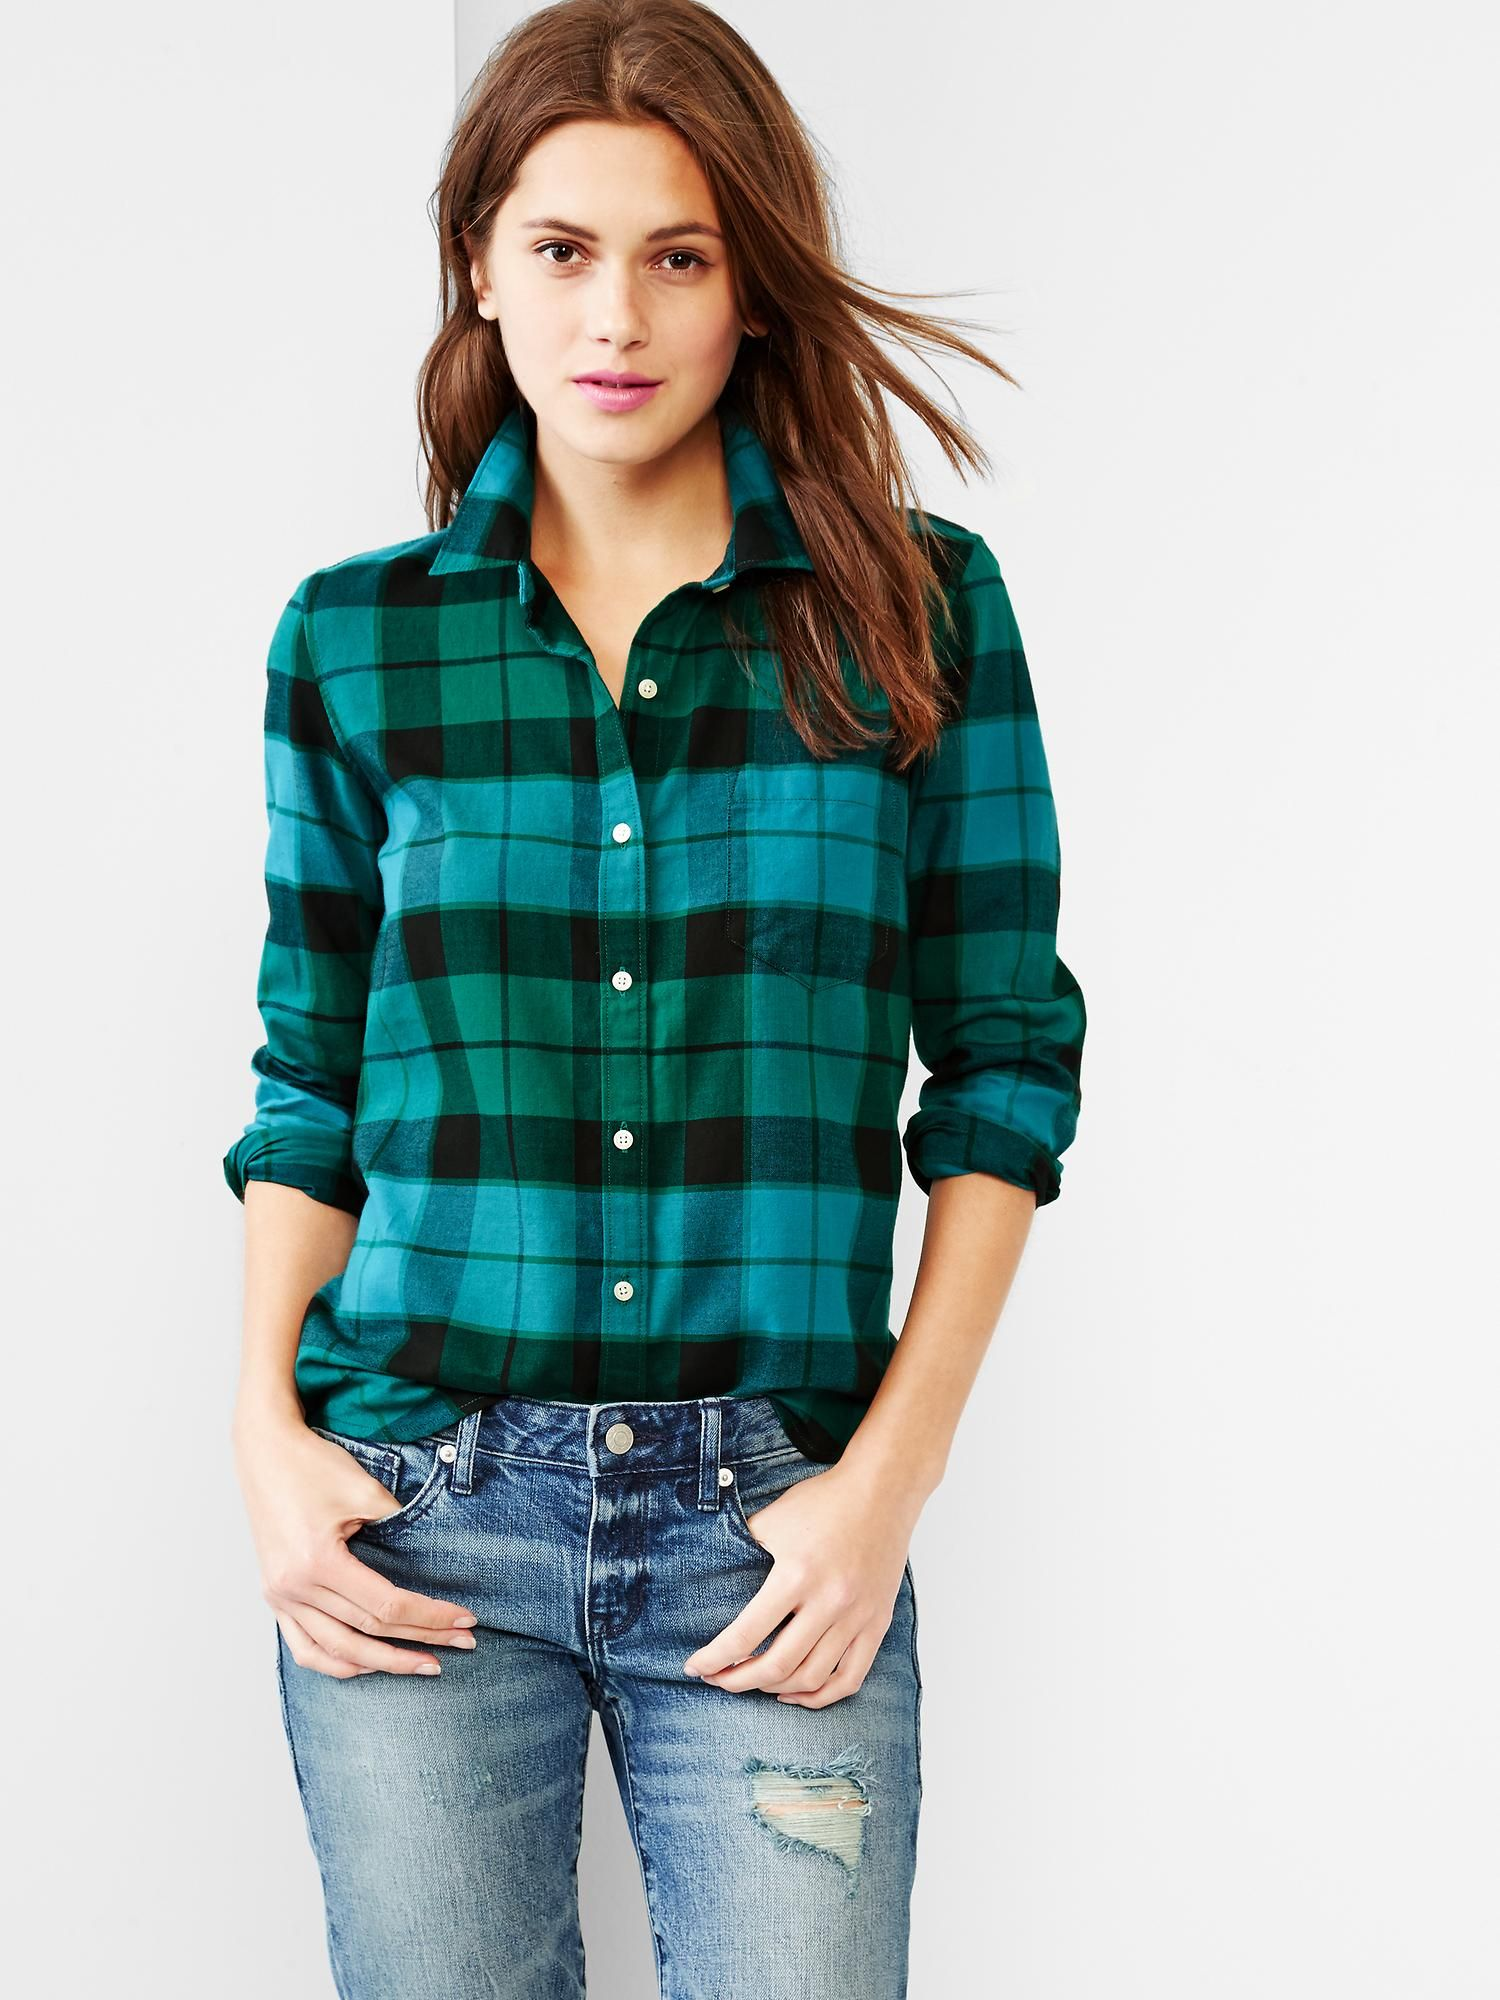 Fitted boyfriend plaid oxford shirt with images green